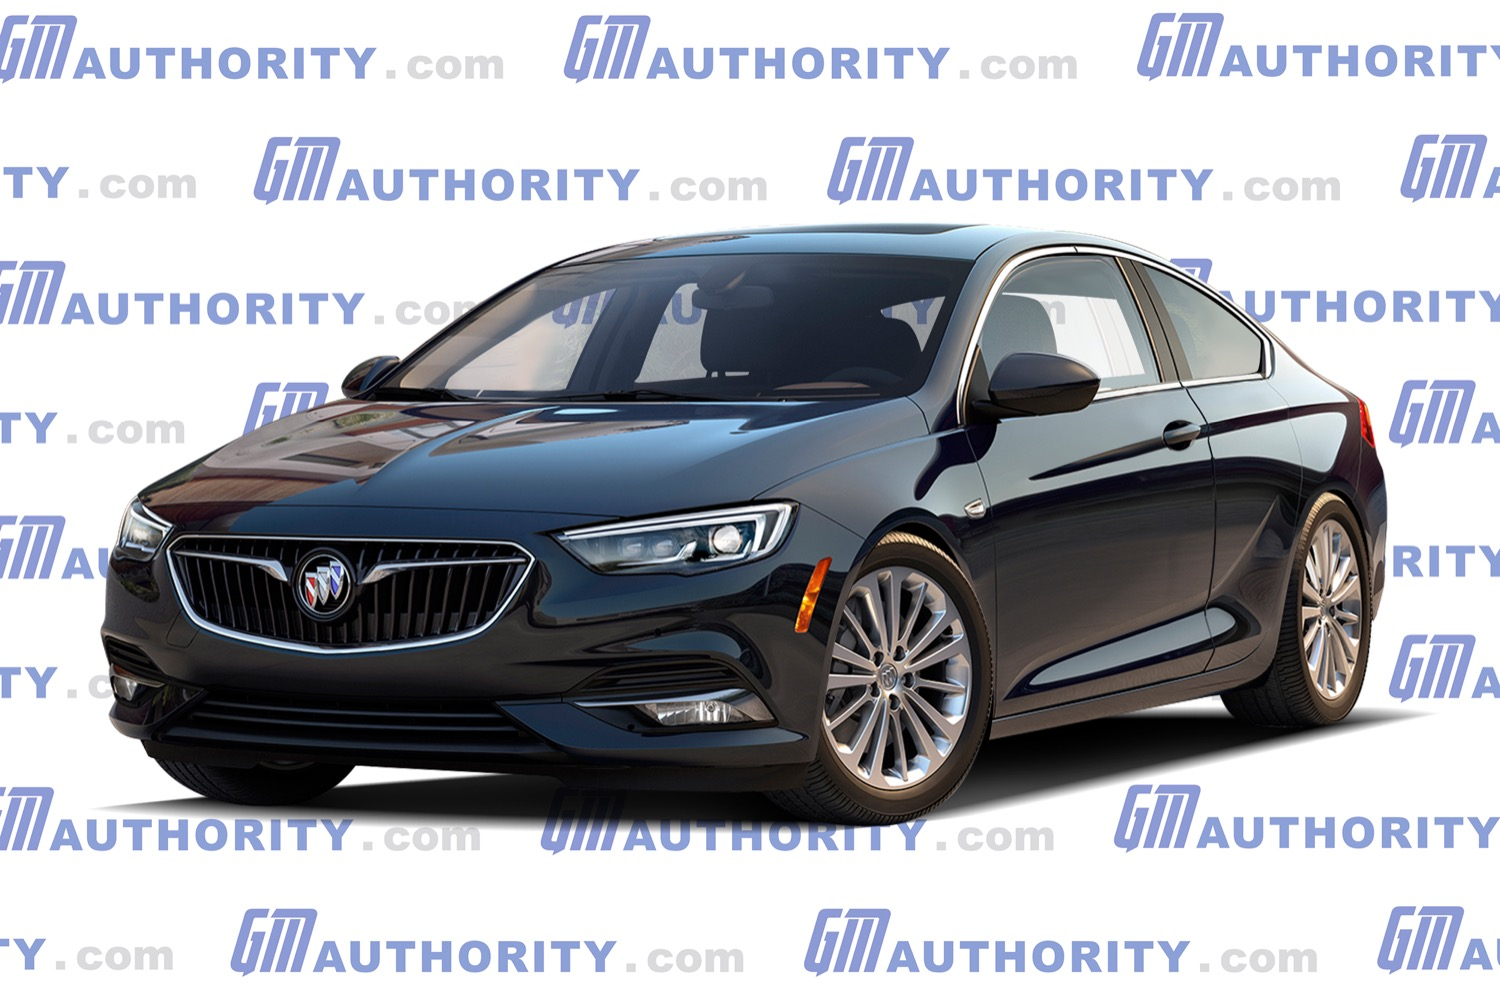 New Renderings Show Hypothetical Buick Regal Coupe | Gm New 2022 Buick Regal Pictures, Price, Reviews